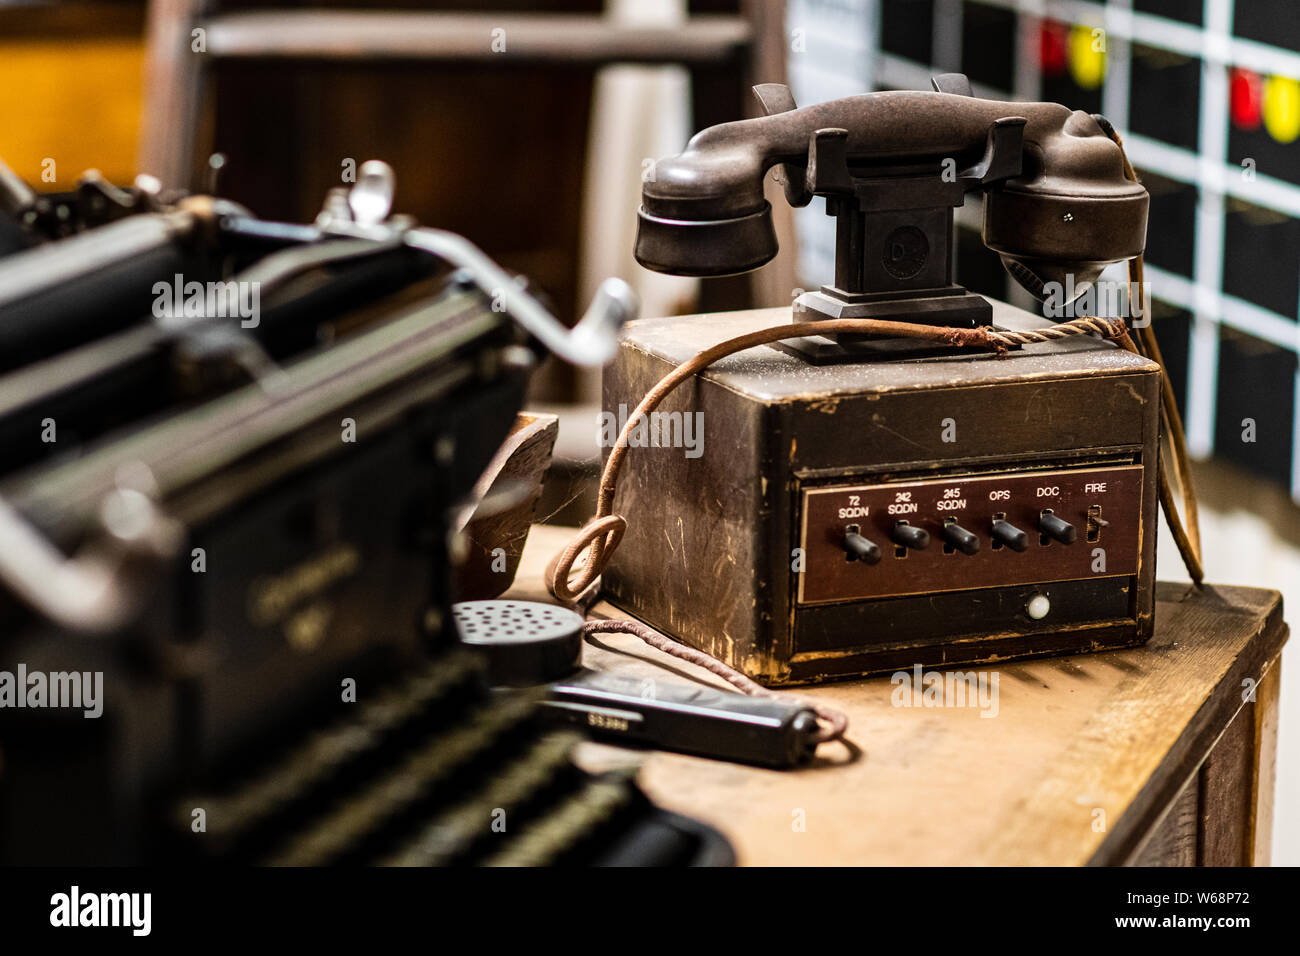 Switchboard Vintage Stock Photos & Switchboard Vintage Stock Images on